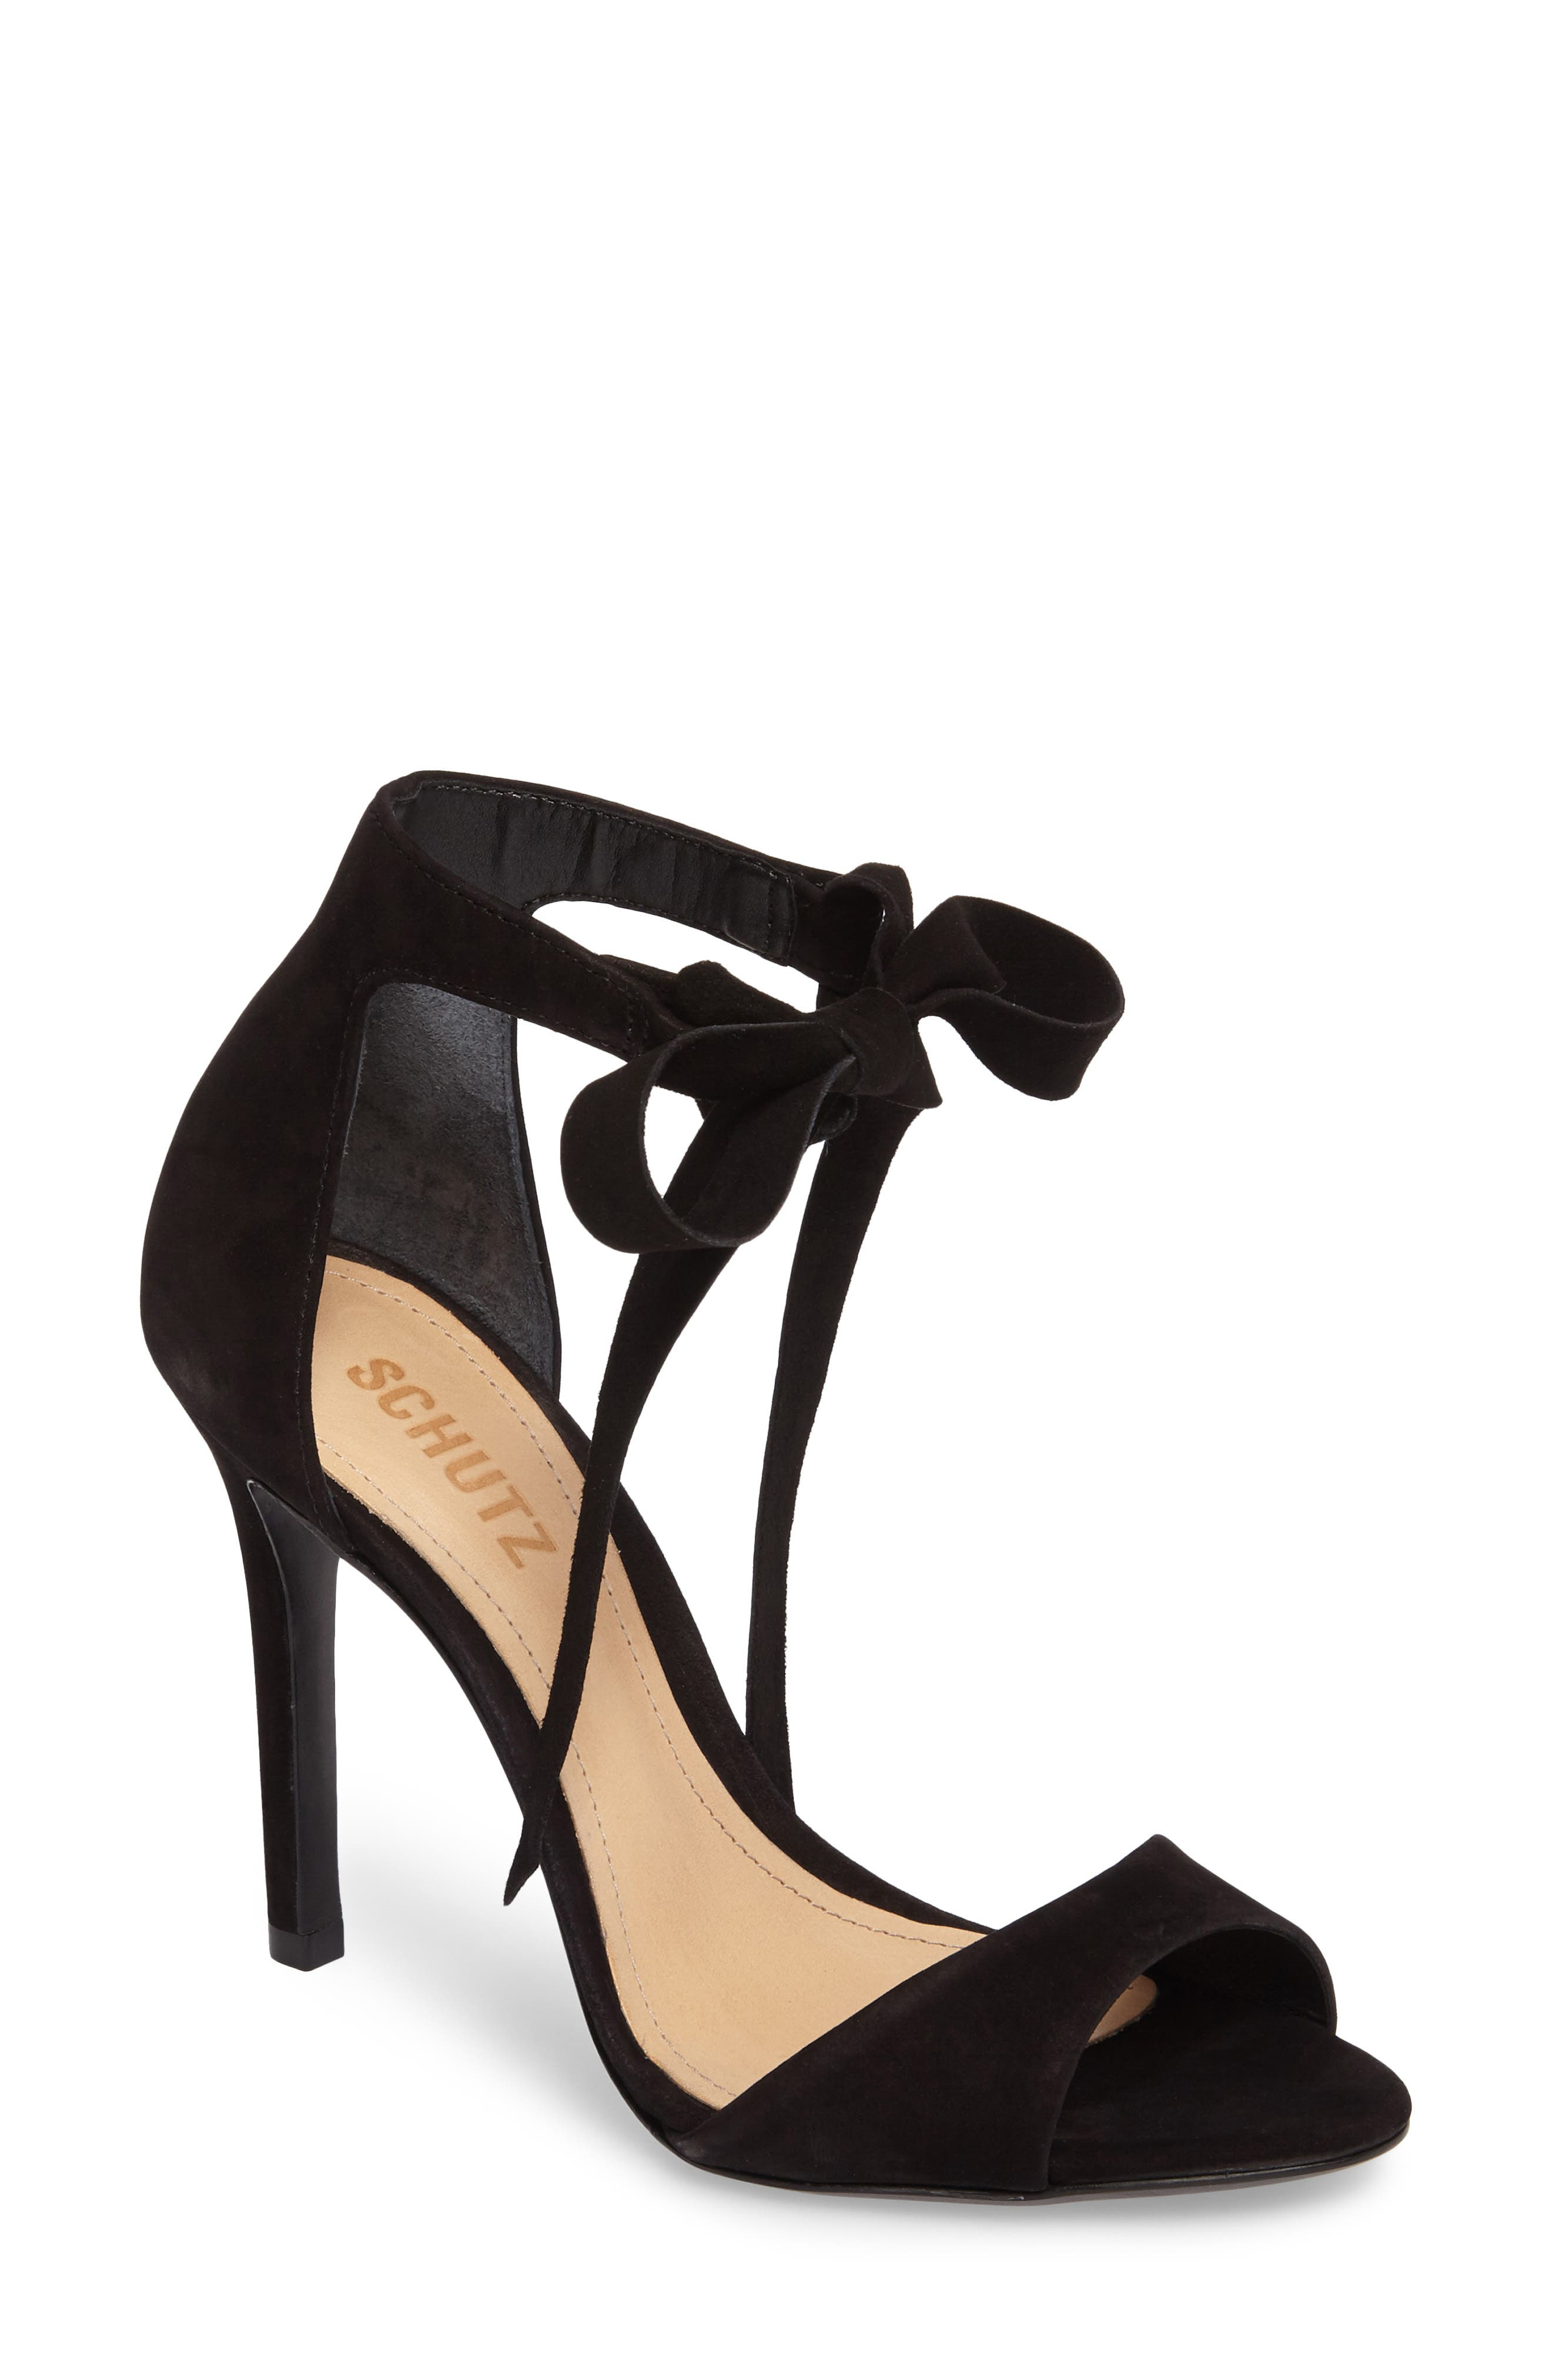 Alternate Image 1 Selected - Schutz Rene Sandal (Women)